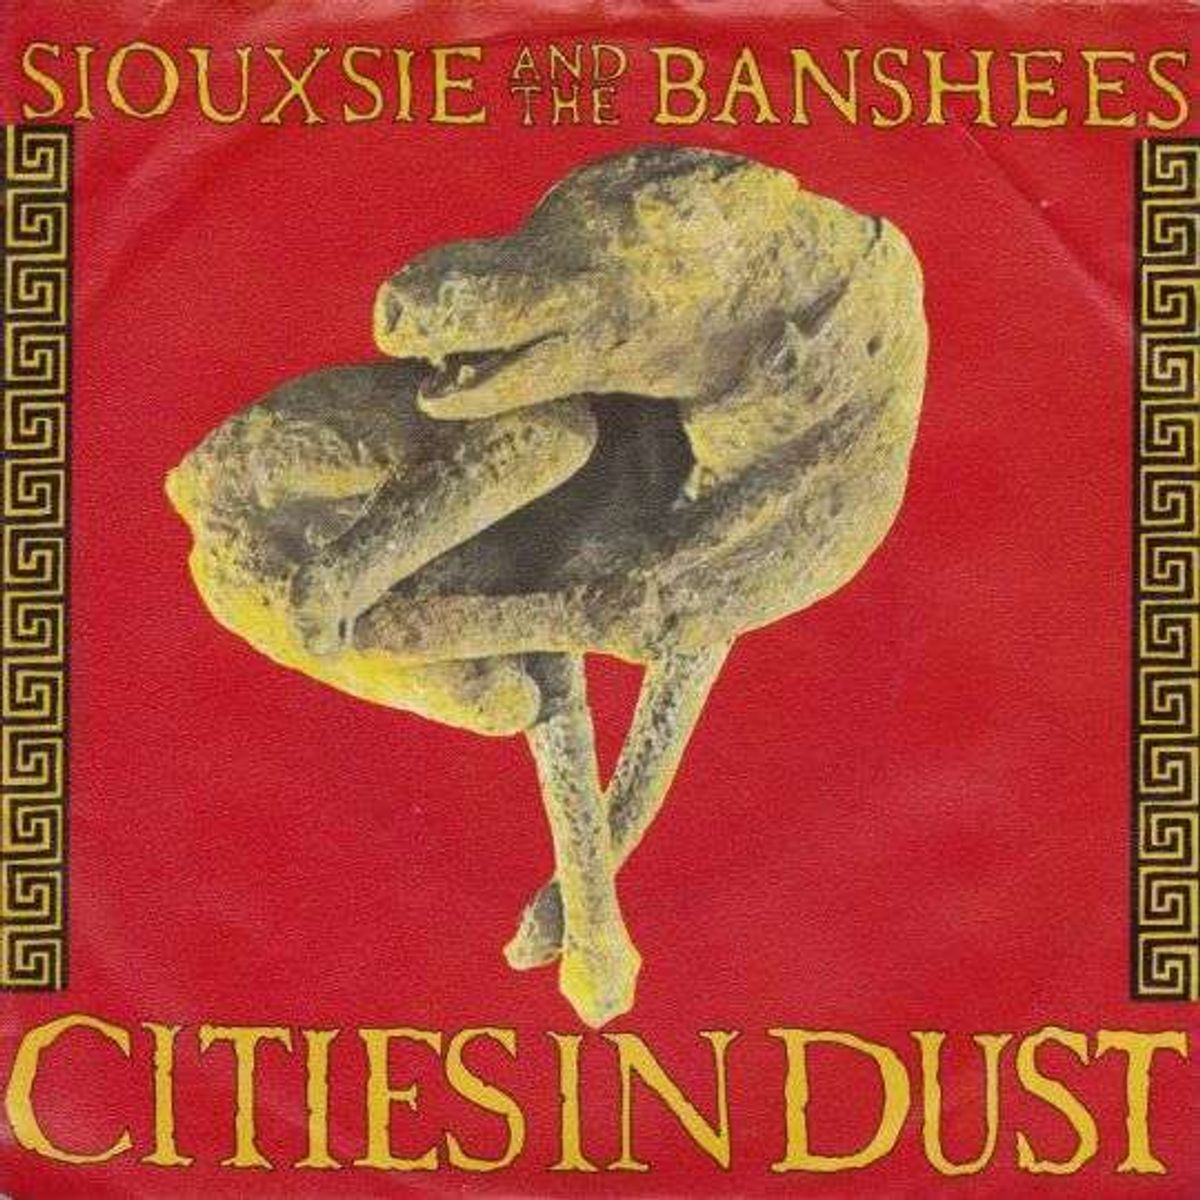 #DisasterSongs - Siouxsie & The Banshees - Cities In Dust (1985)